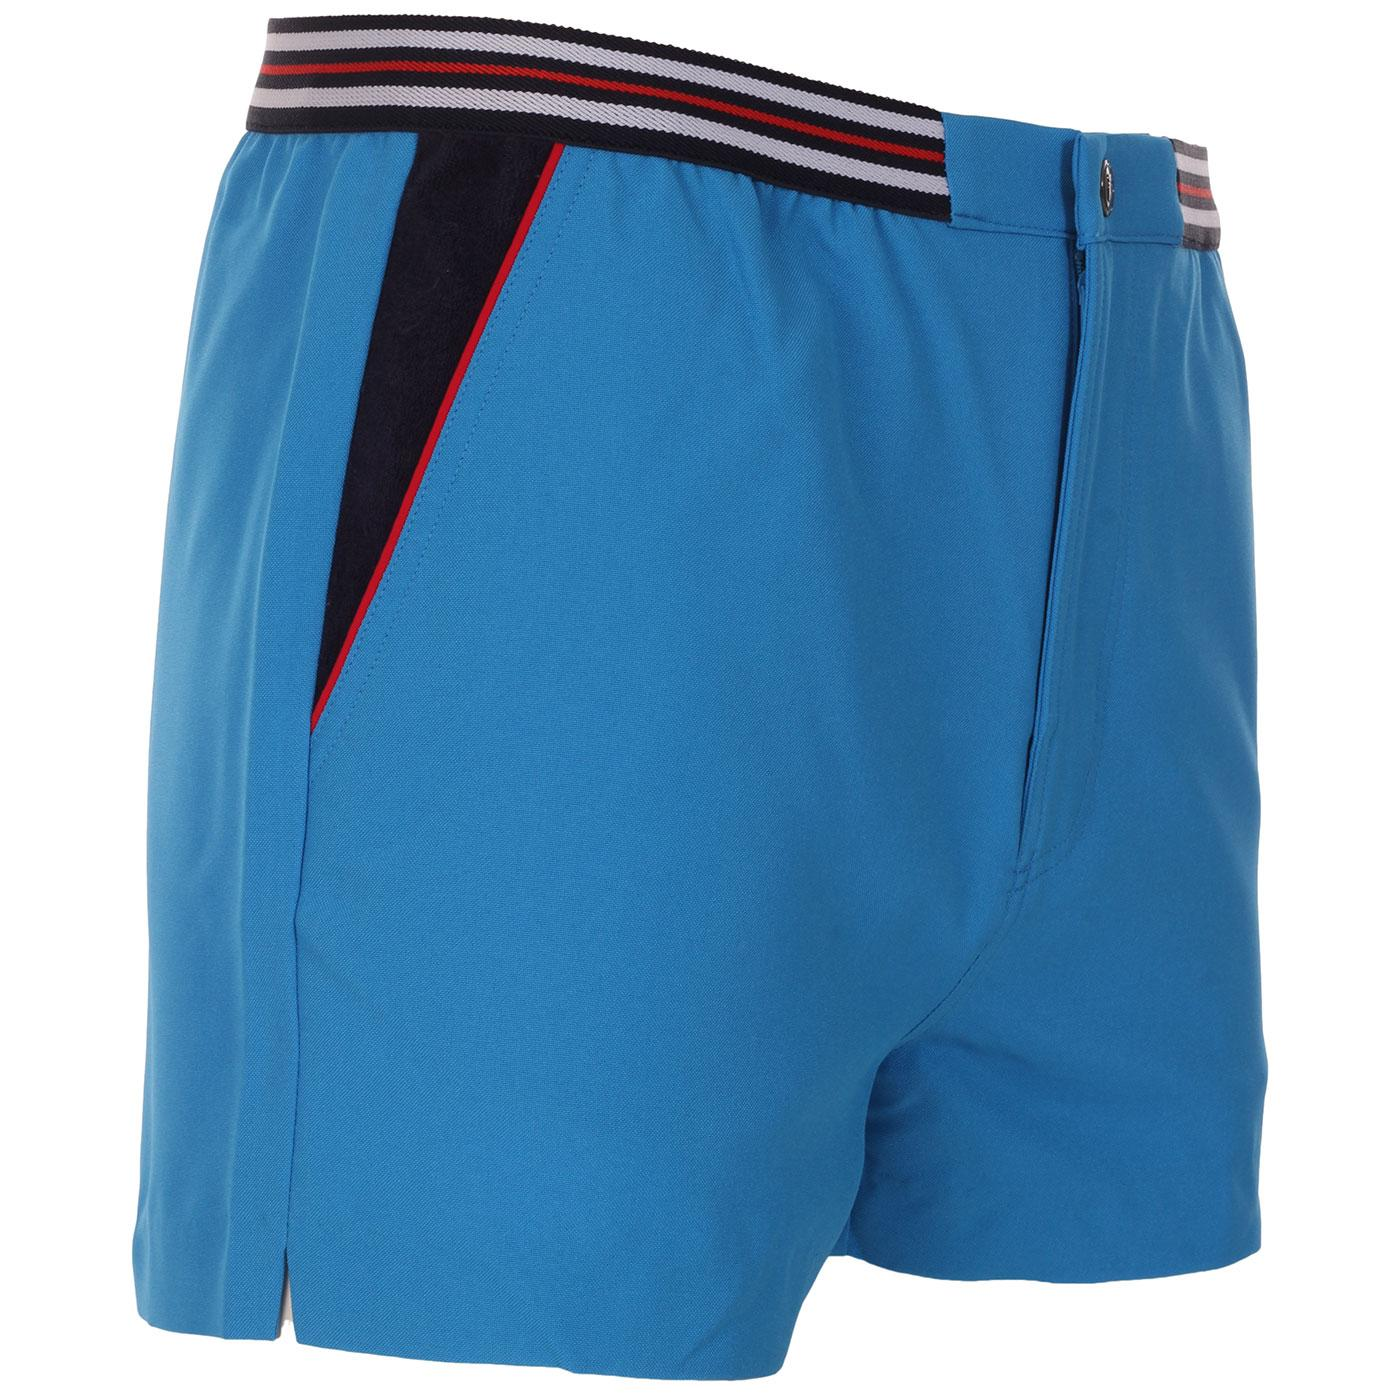 High Tide 4 FILA VINTAGE Retro Tennis Shorts (BA)